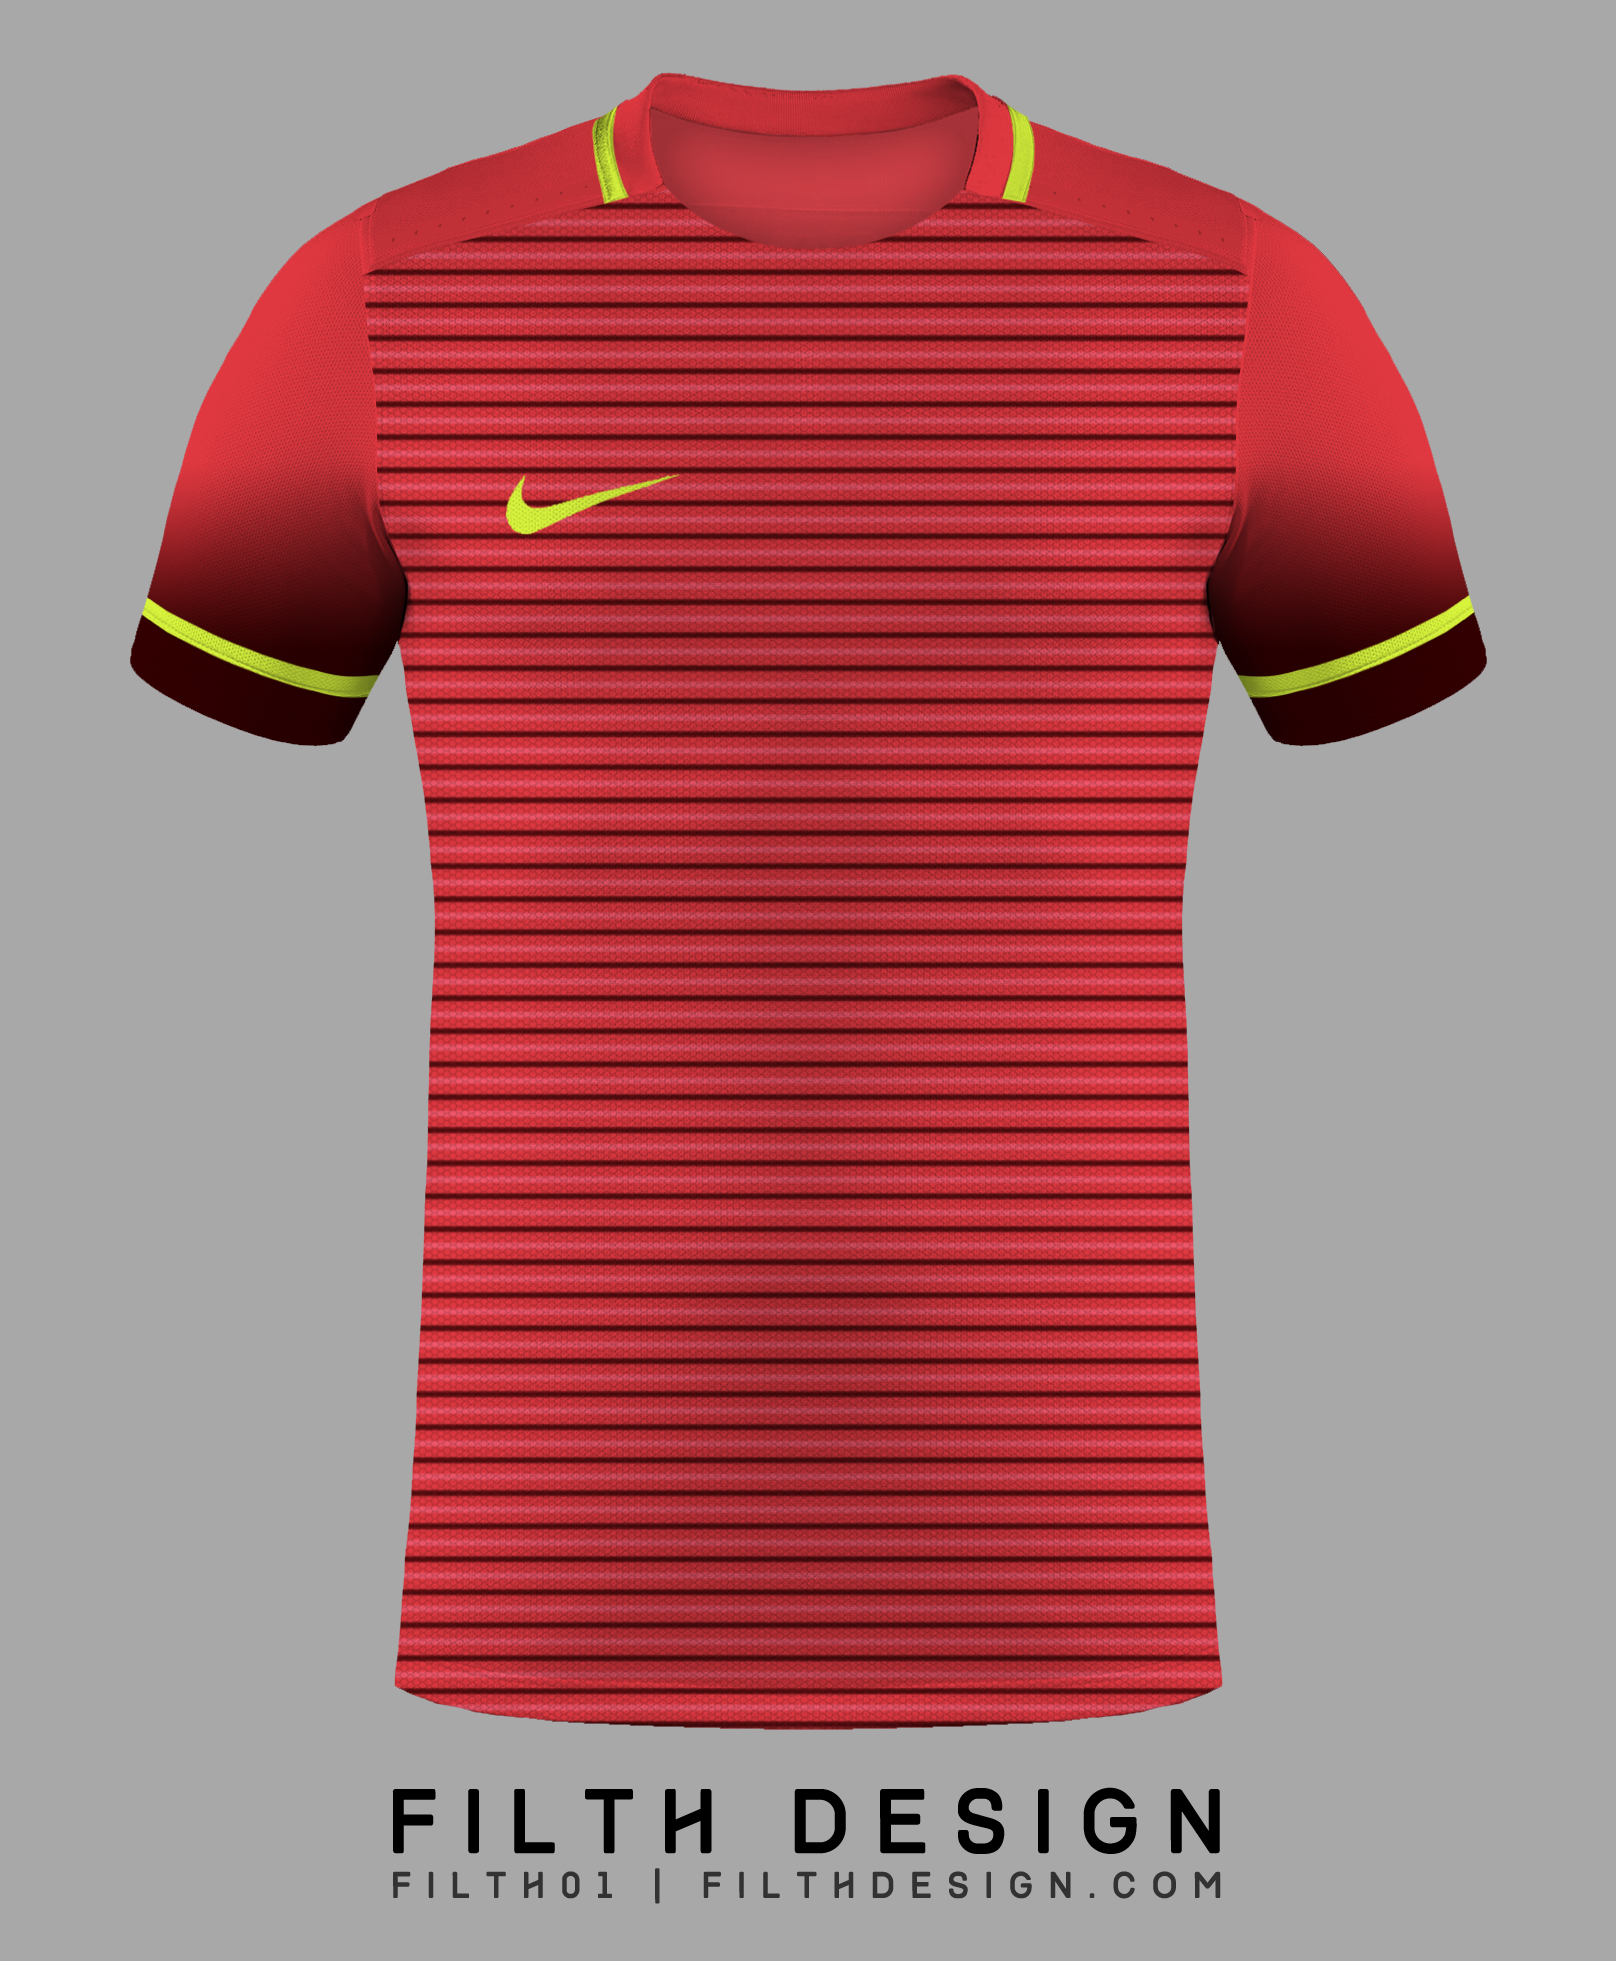 8425e52e5711 Nike Jersey inspired by Nike Mercurial Superfly 2016